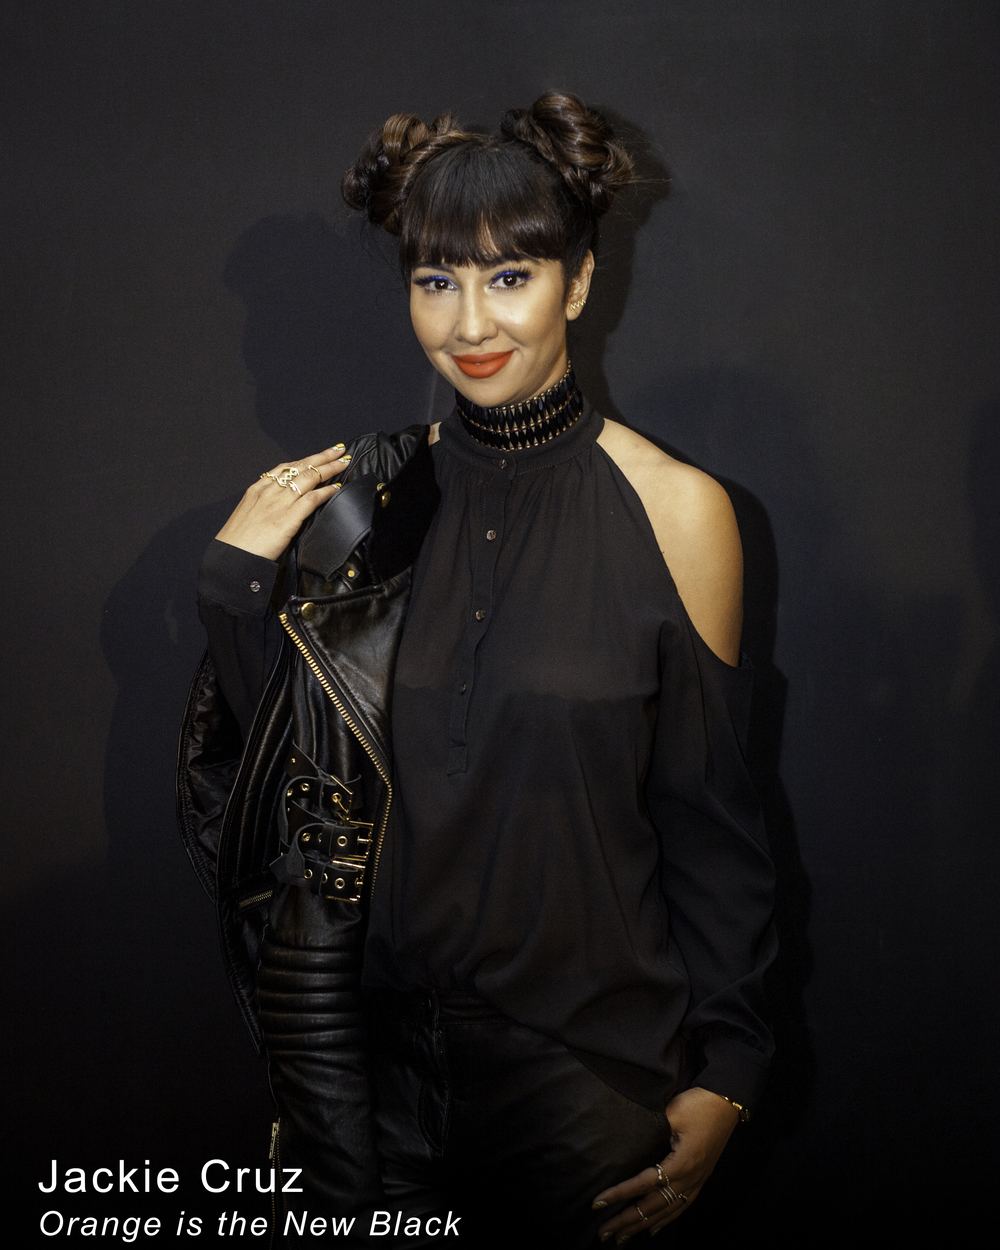 Jackie-Cruz-Orange-Is-The-New-Black-Shana-Schnur-Photography-16.jpg